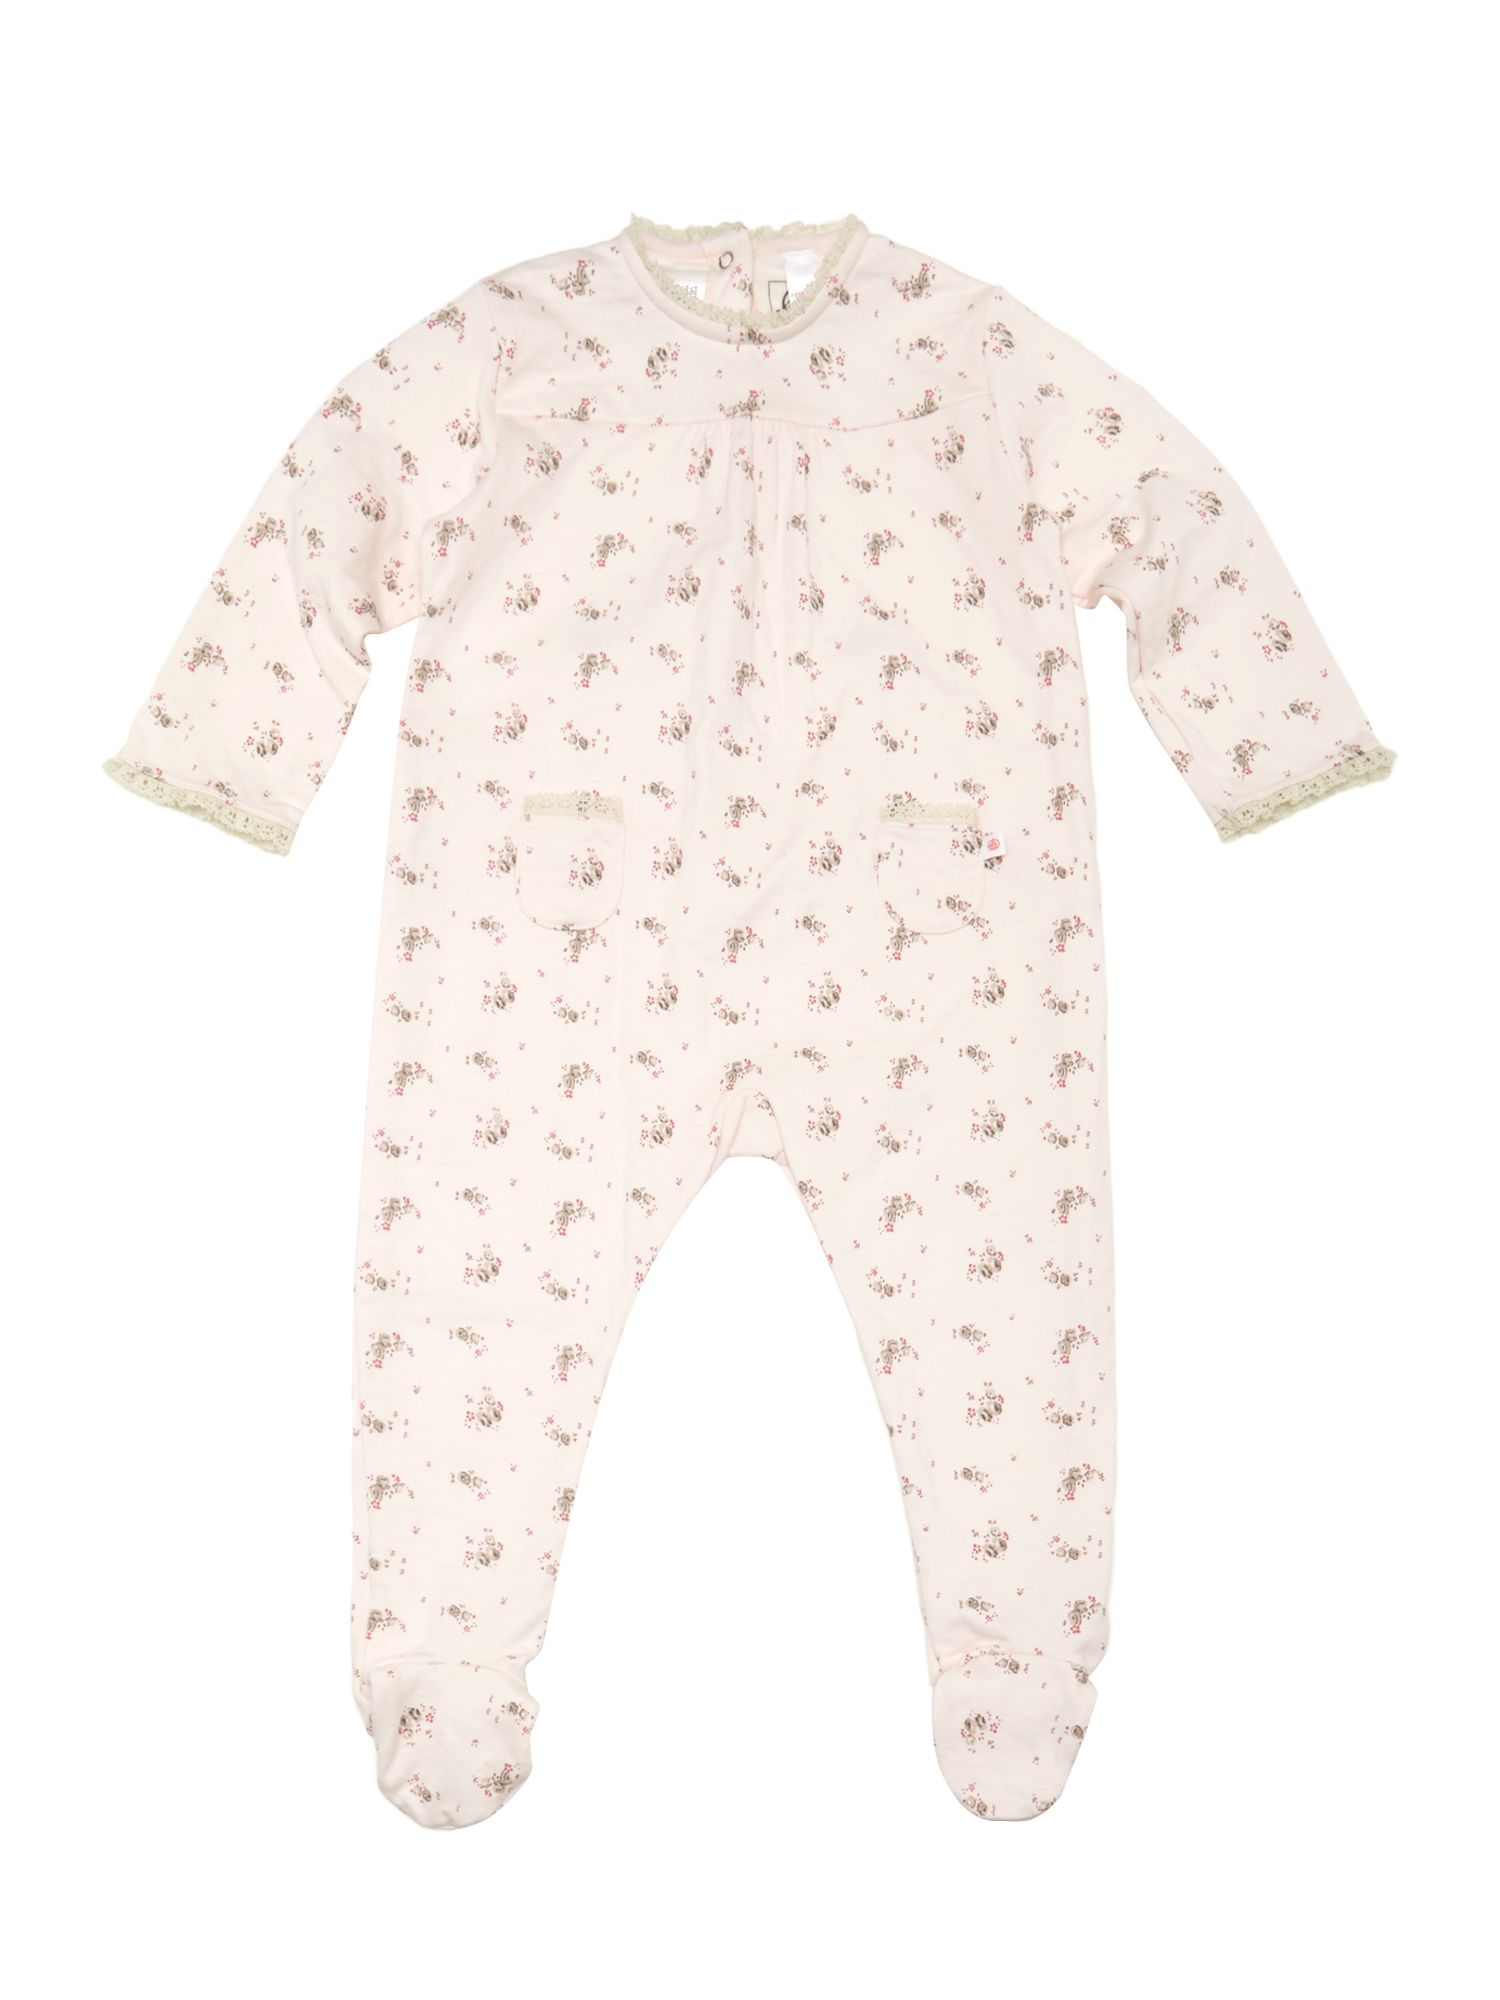 Baby girl back opening sleepsuit